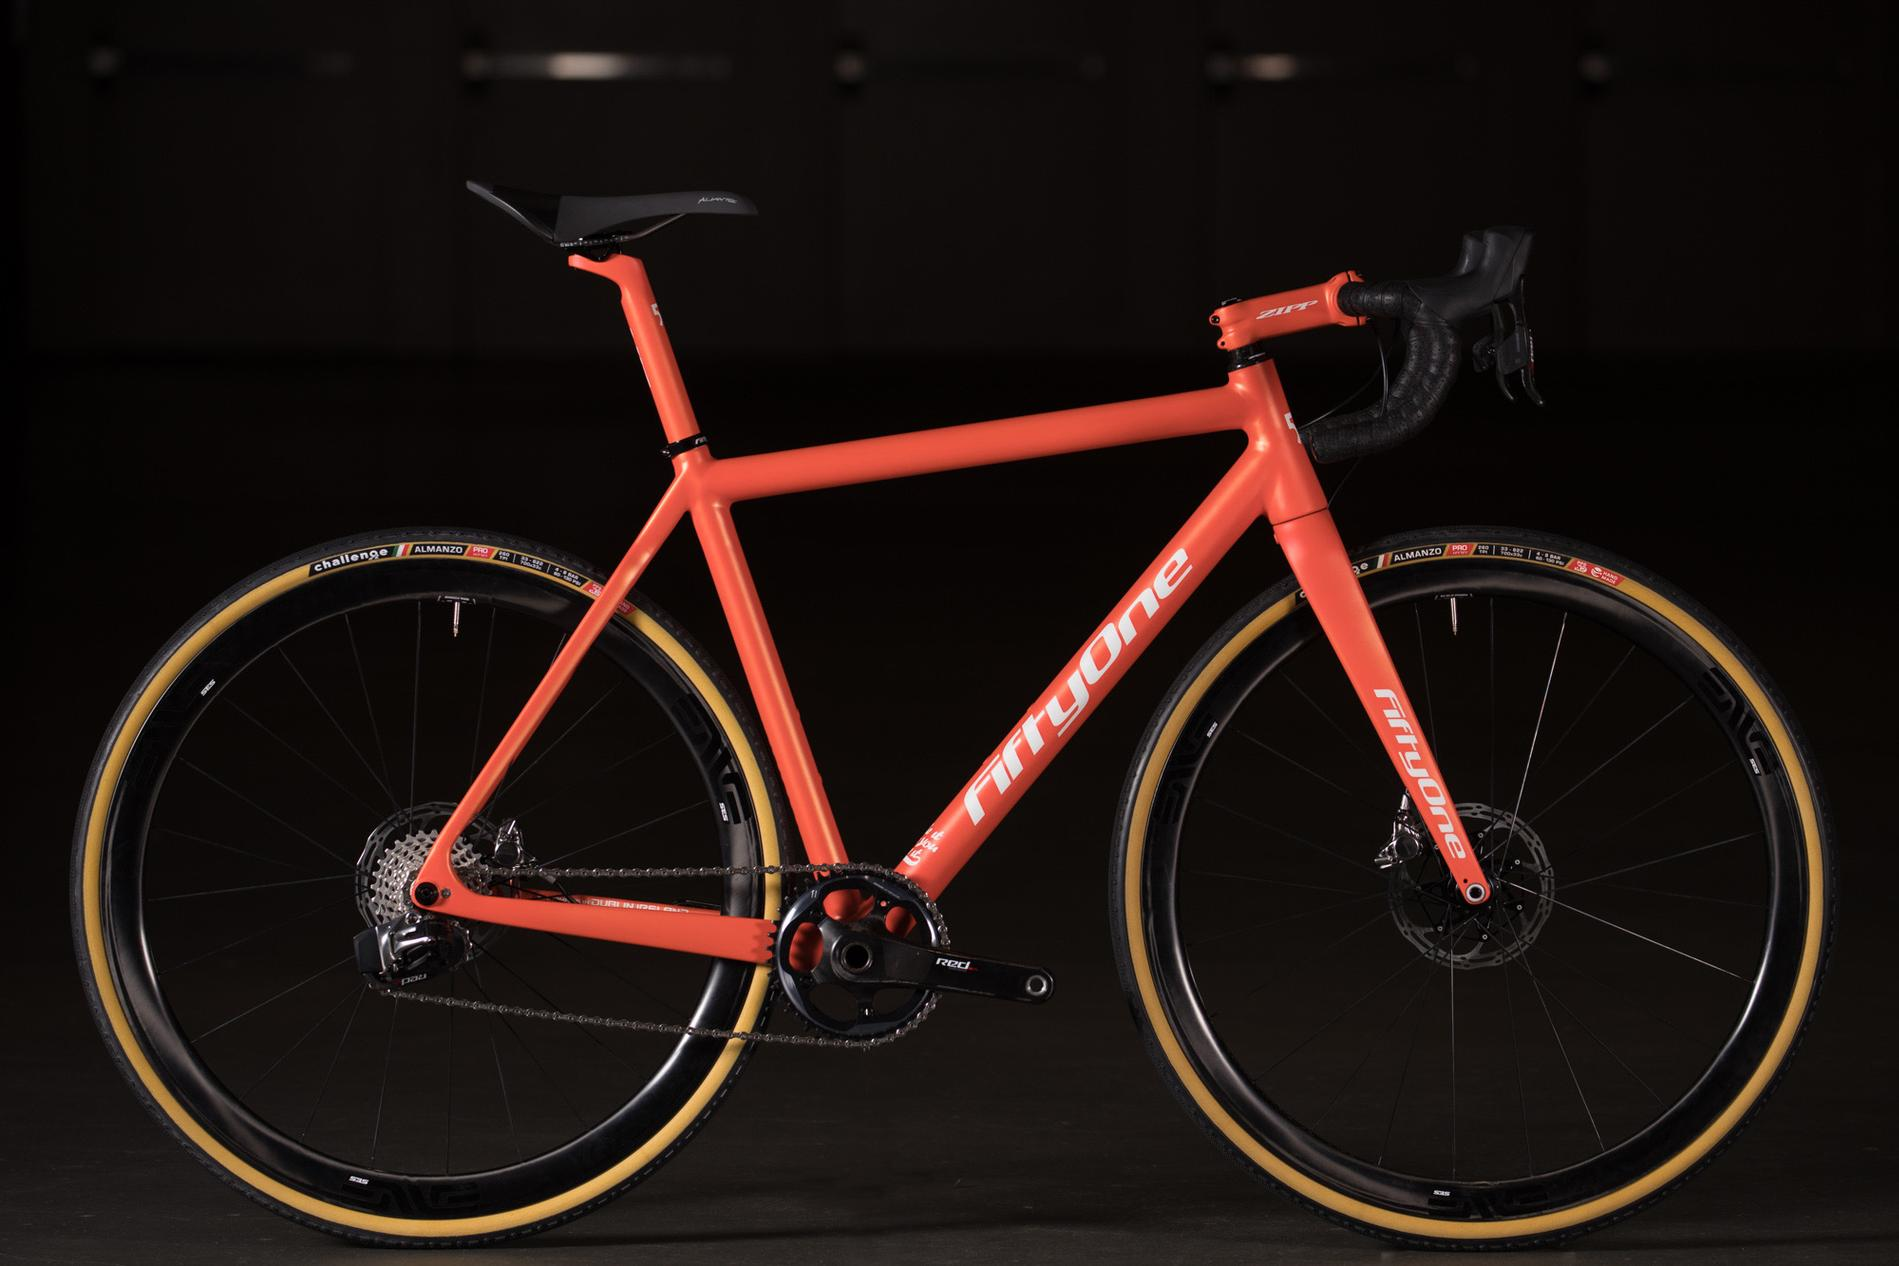 2018 NAHBS: Dublin-Made Fifty One Carbon Road